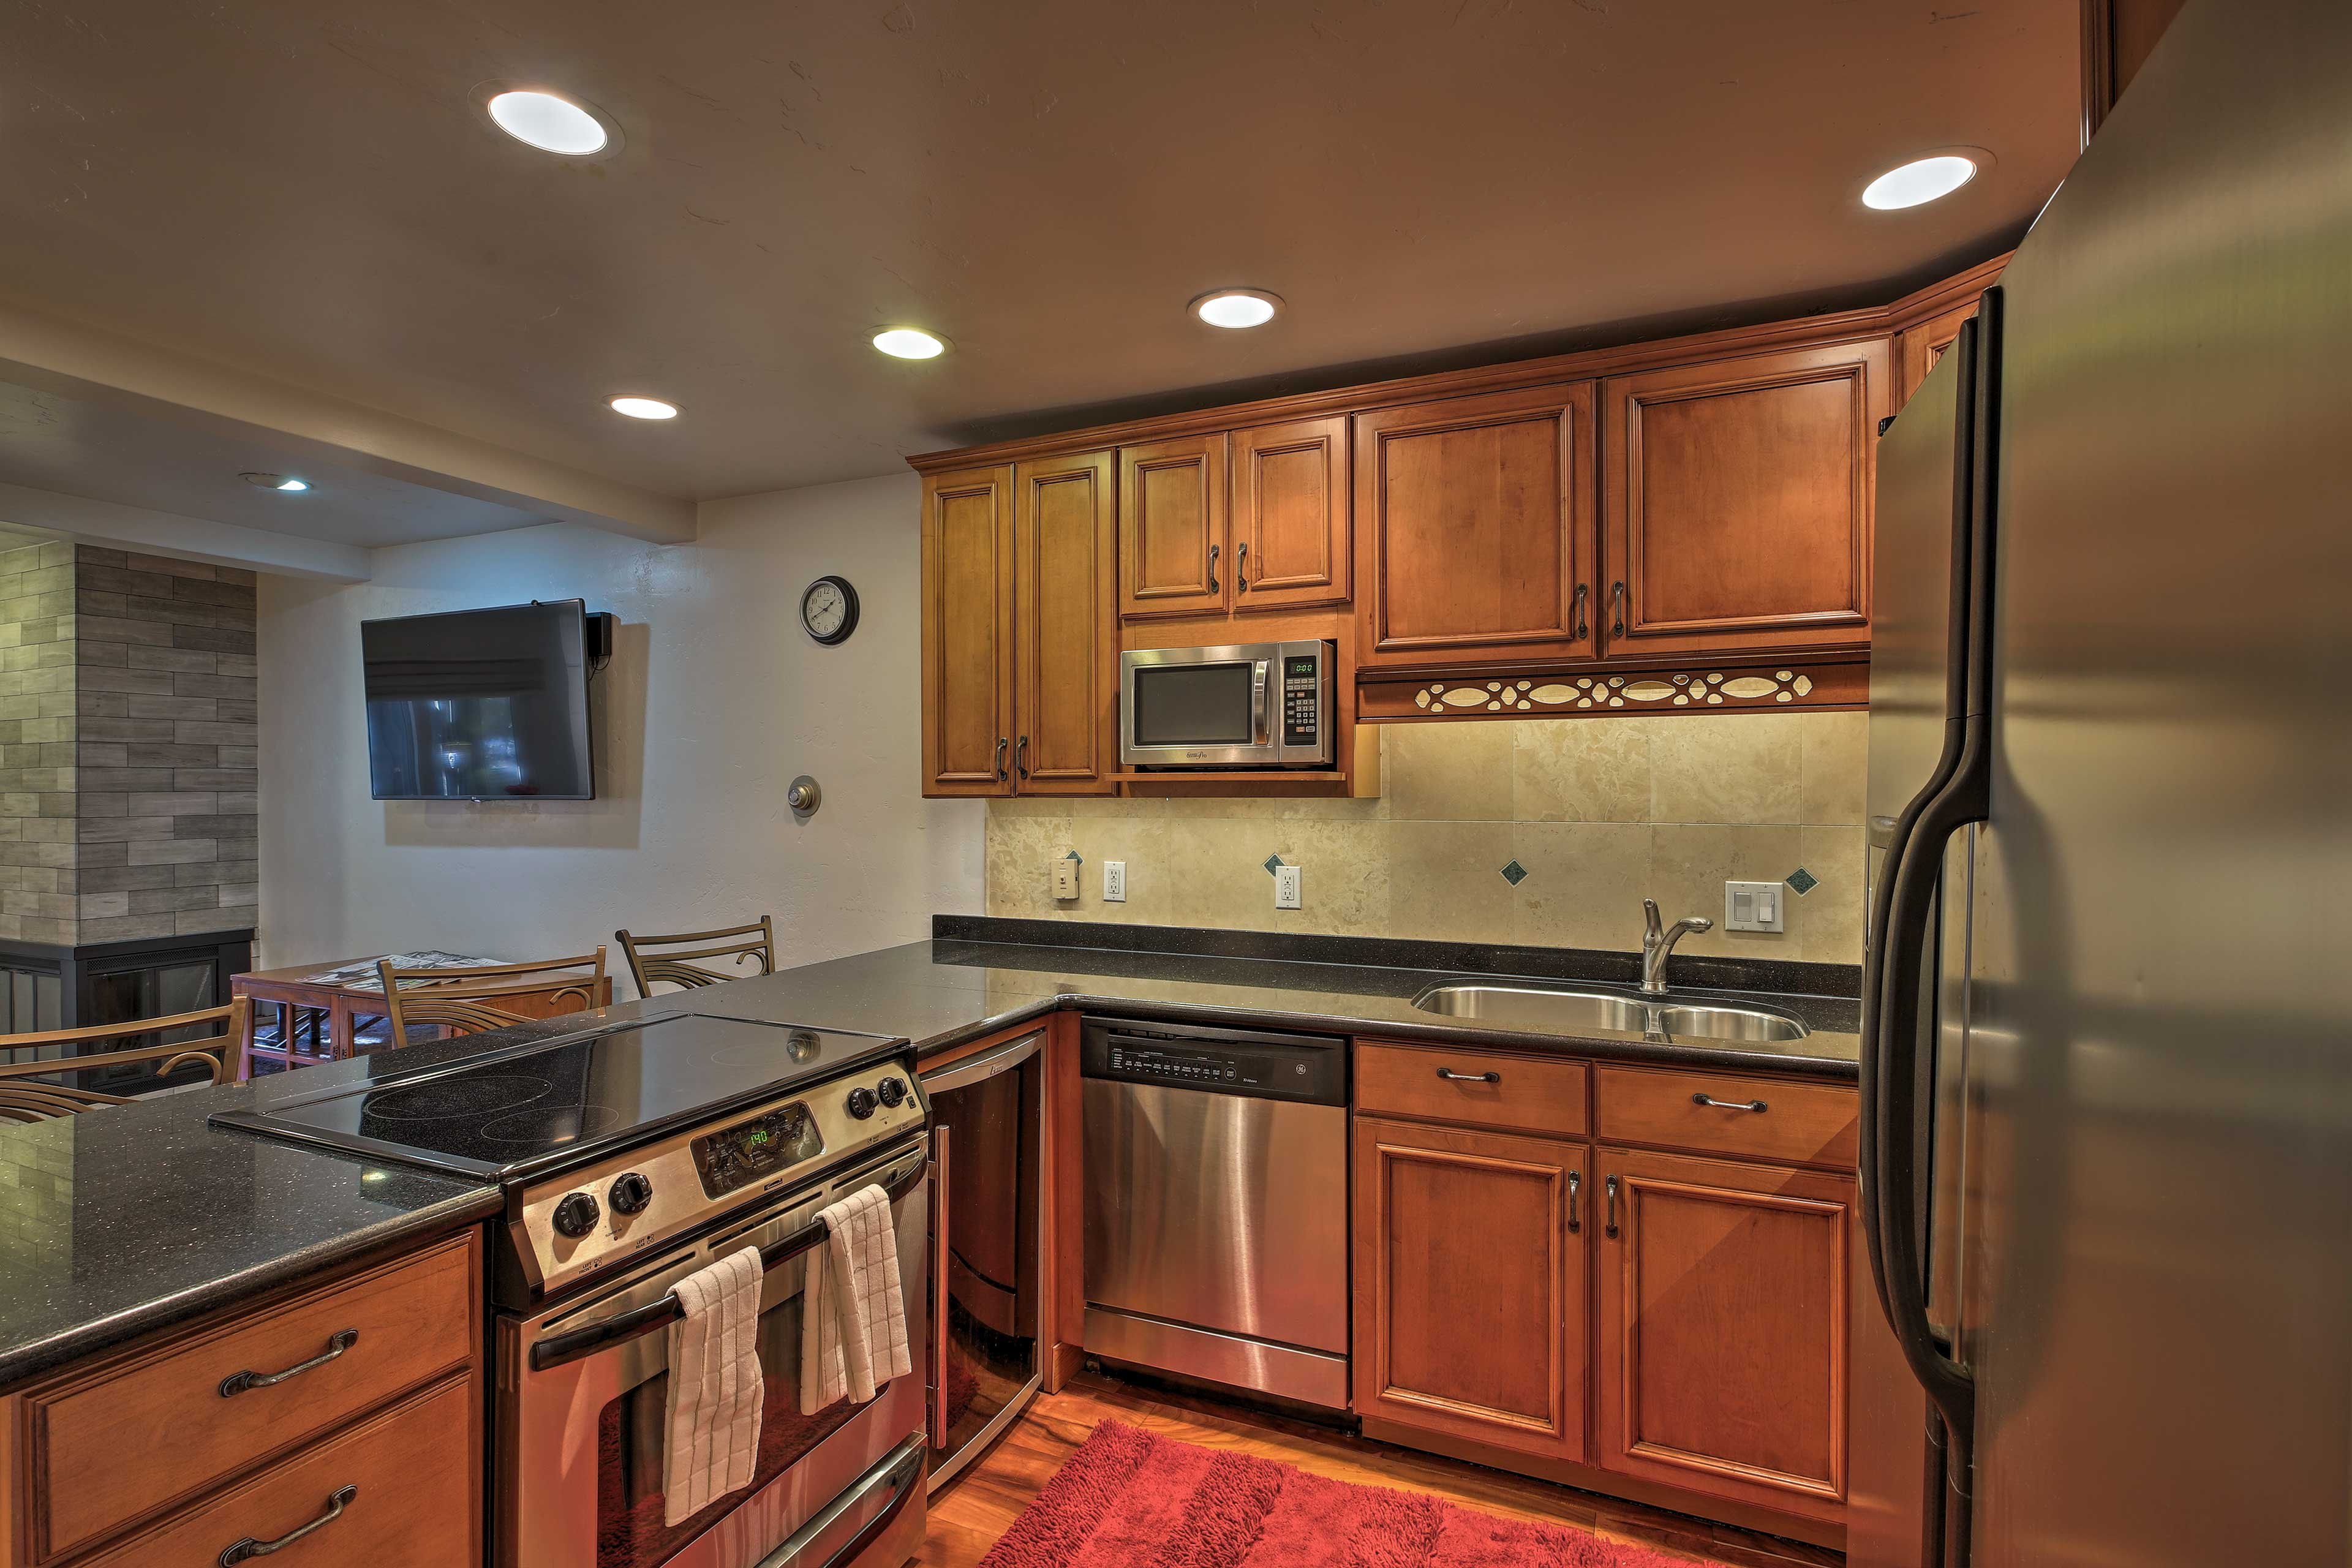 The fully equipped kitchen has stainless steel appliances & granite counters.